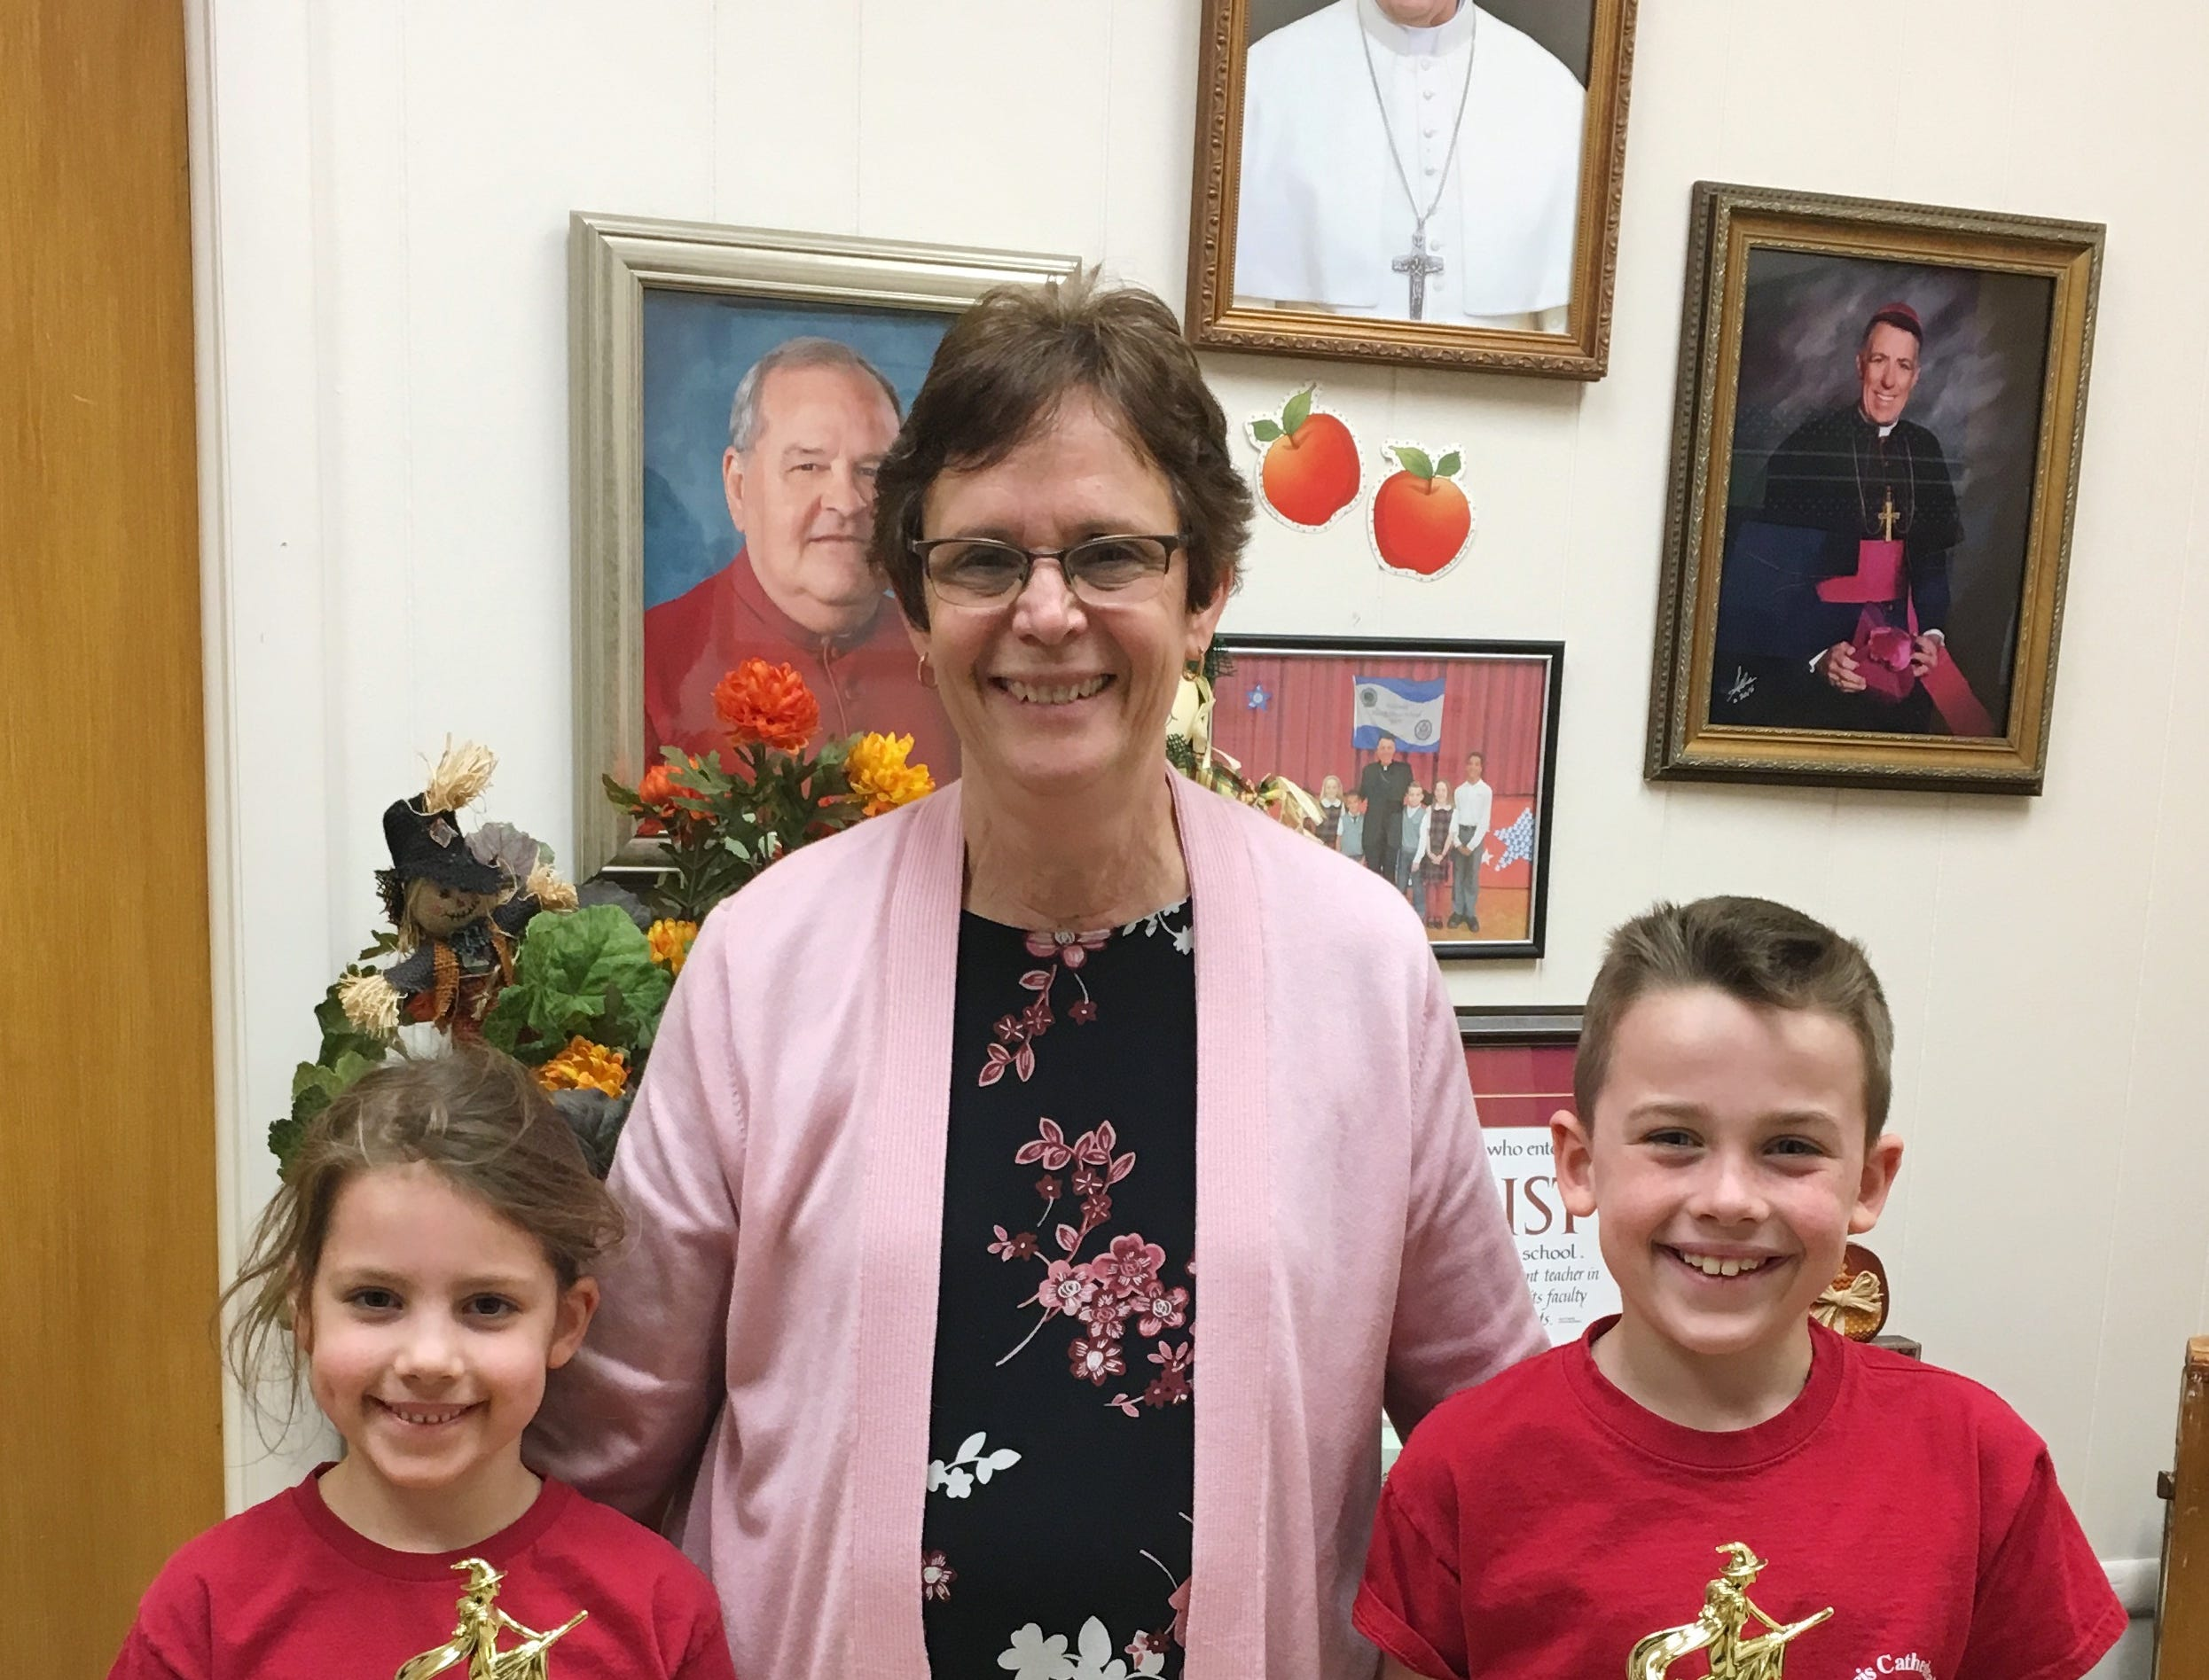 Congratulations to St. Francis Cathedral School (SFCS) brother and sister, Brendan and Norah Mullins who were the winners of the Metuchen Recreation Poster Painting Contest pictured here with Principal Ann Major.  Brendan is a third grader and Norah is in first grade. The event was held on October 16th and was open to Kindergarten through 4th Grade students. SFCS educates children from Pre K through 8th Grade in Metuchen.